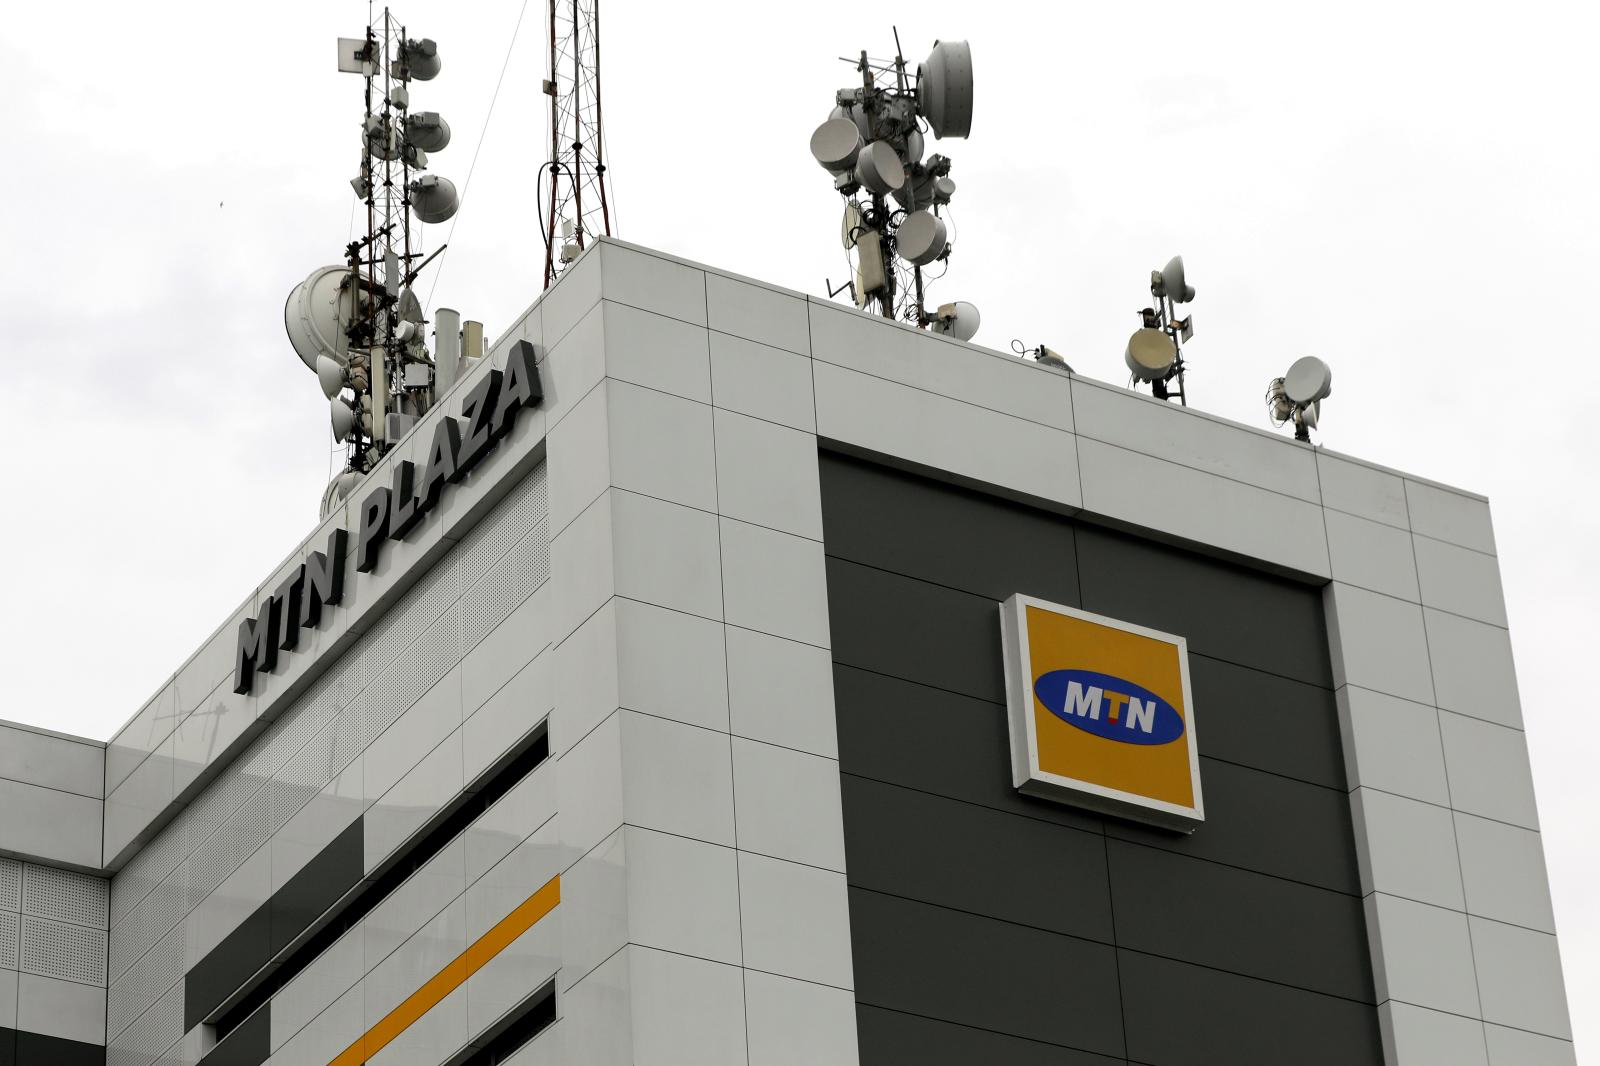 Over 100 network towers of MTN South Africa have been damaged amid unrest in the country.